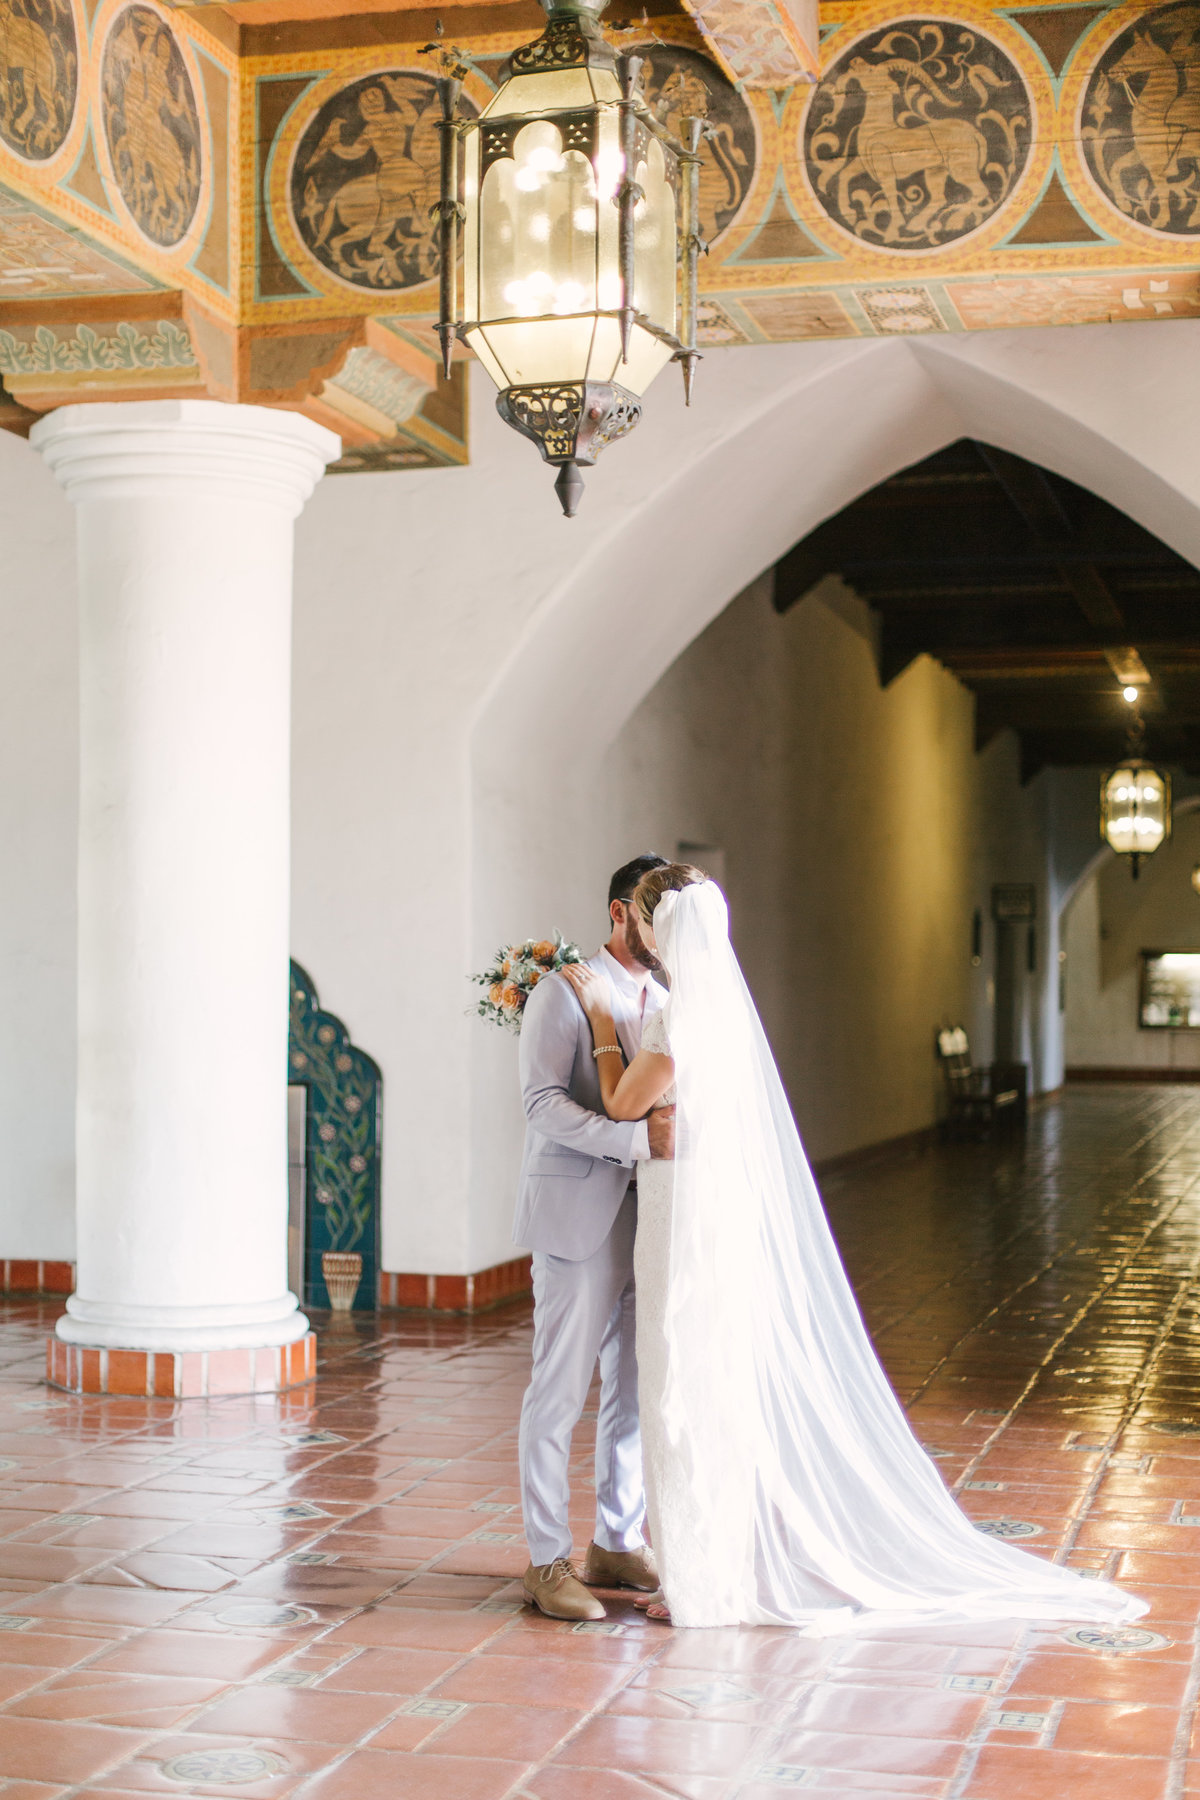 Groom kisses bride at Santa Barbara Courthouse wedding